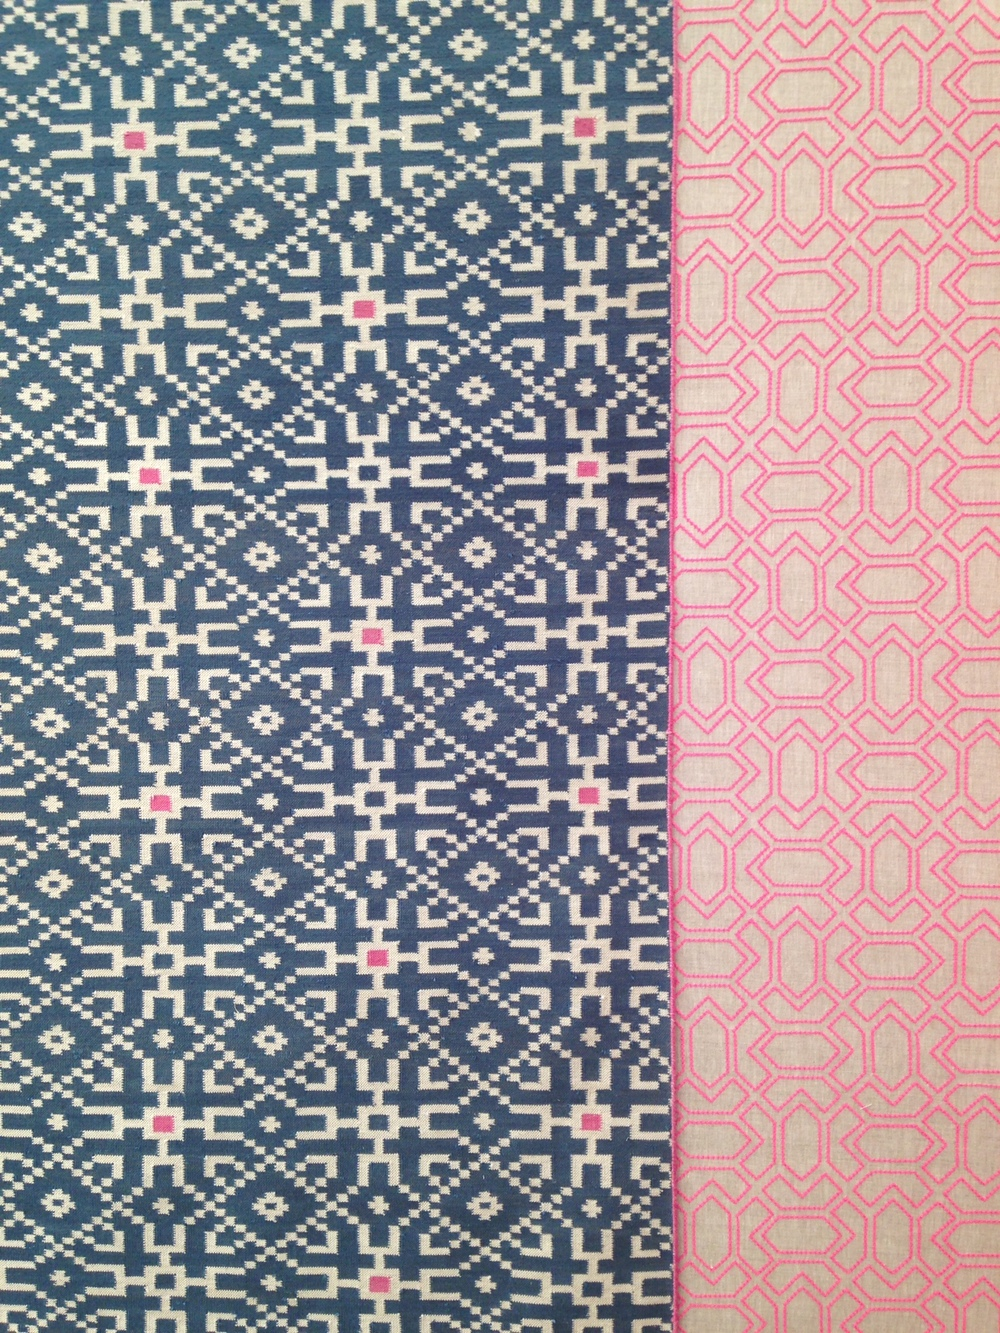 Wonderful Vanderhurd fabrics. May suggest to a current client with plans for a Mexican/Moroccan feel